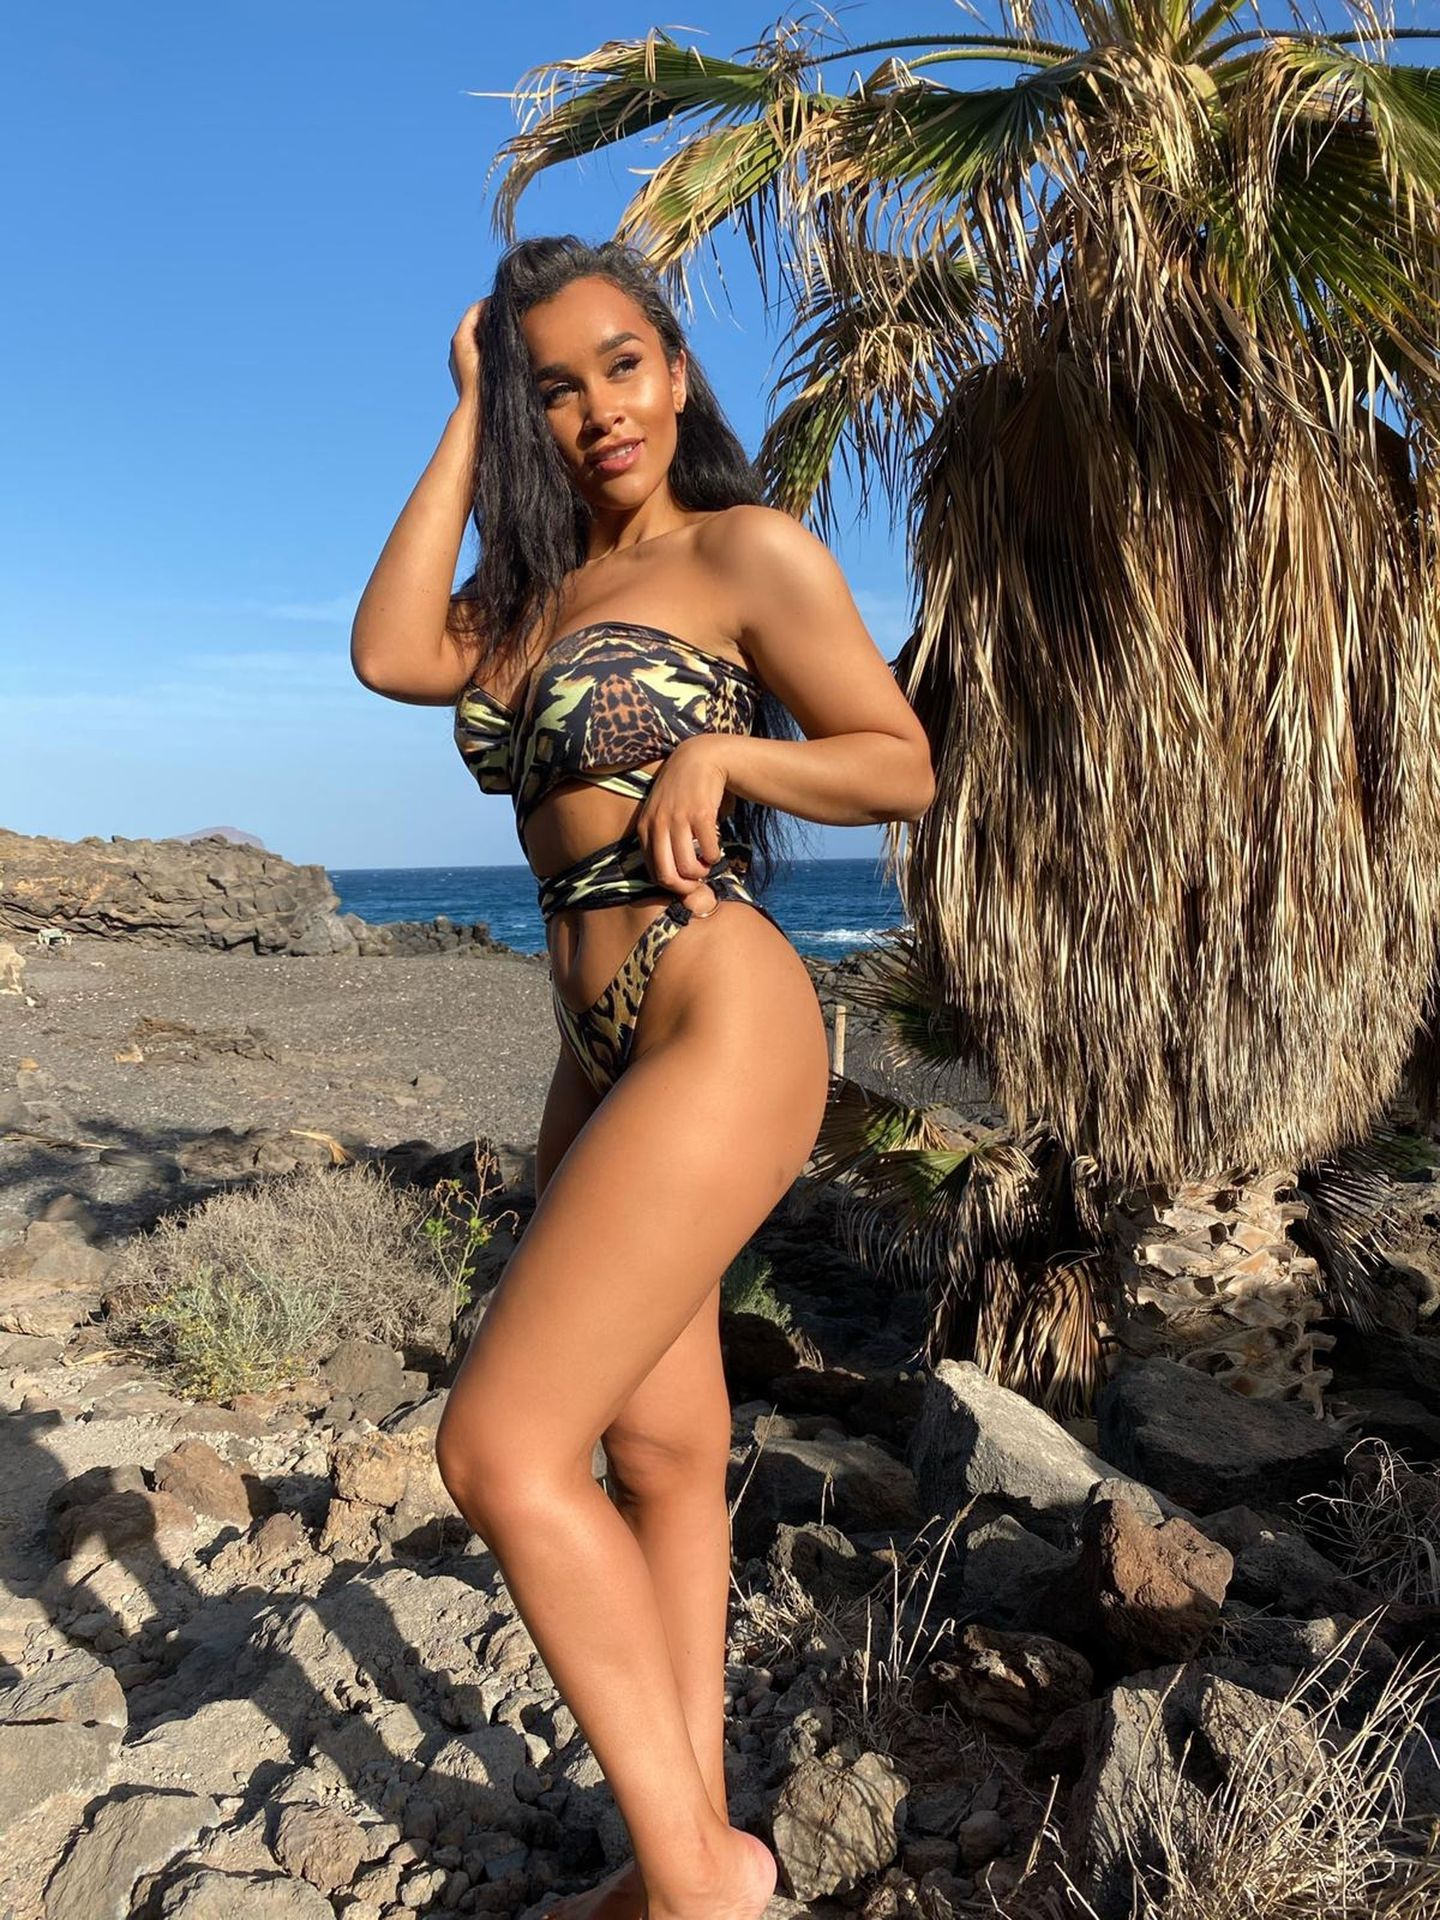 Sian Gabbidon Gets The Pulses Racing By Showcasing Her New Swimwear Collection 0011